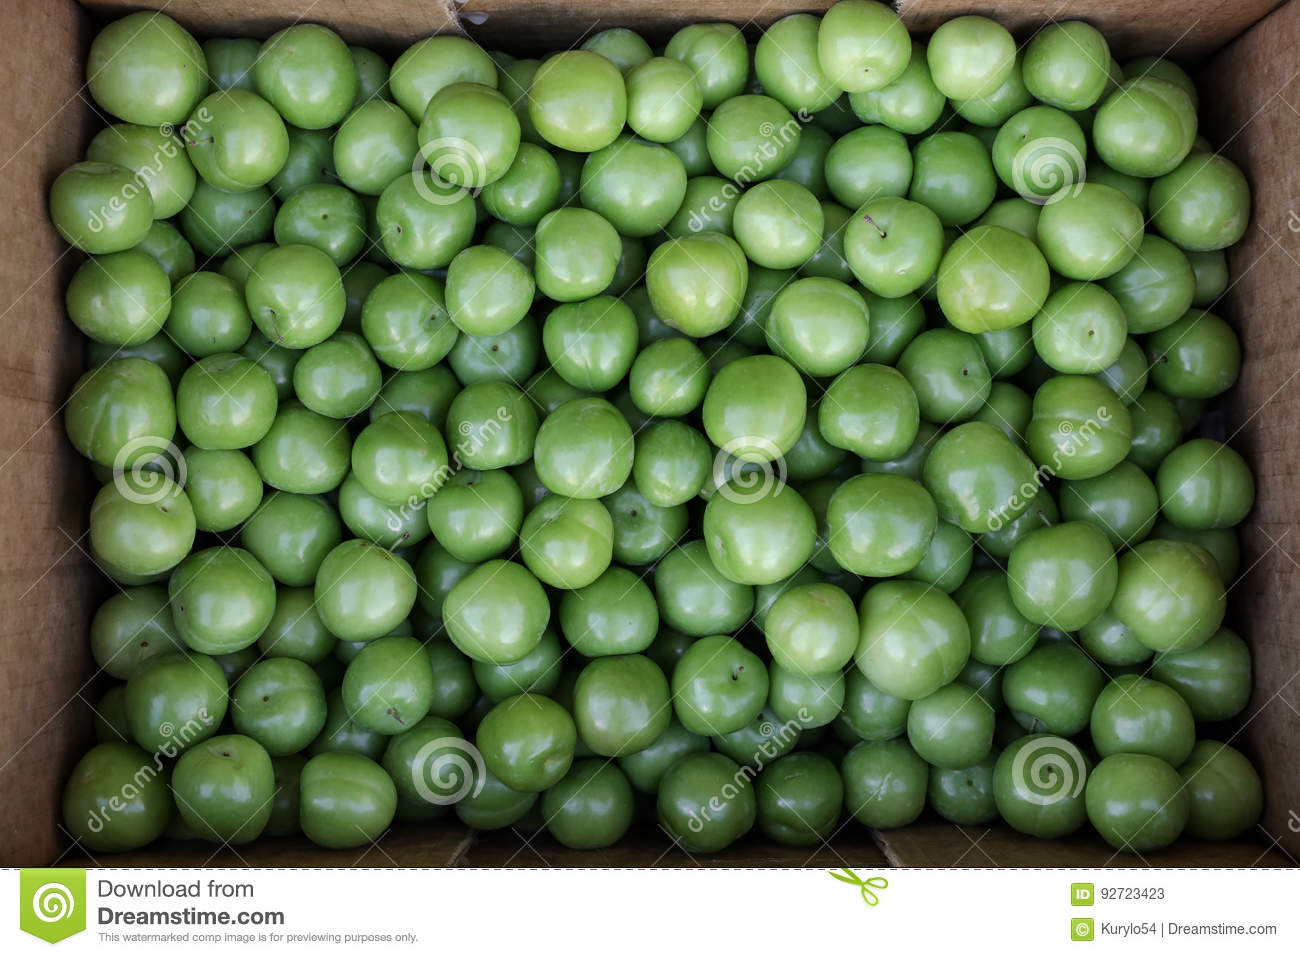 A box of Greengage plums fruits for sale in a vegetable shop.